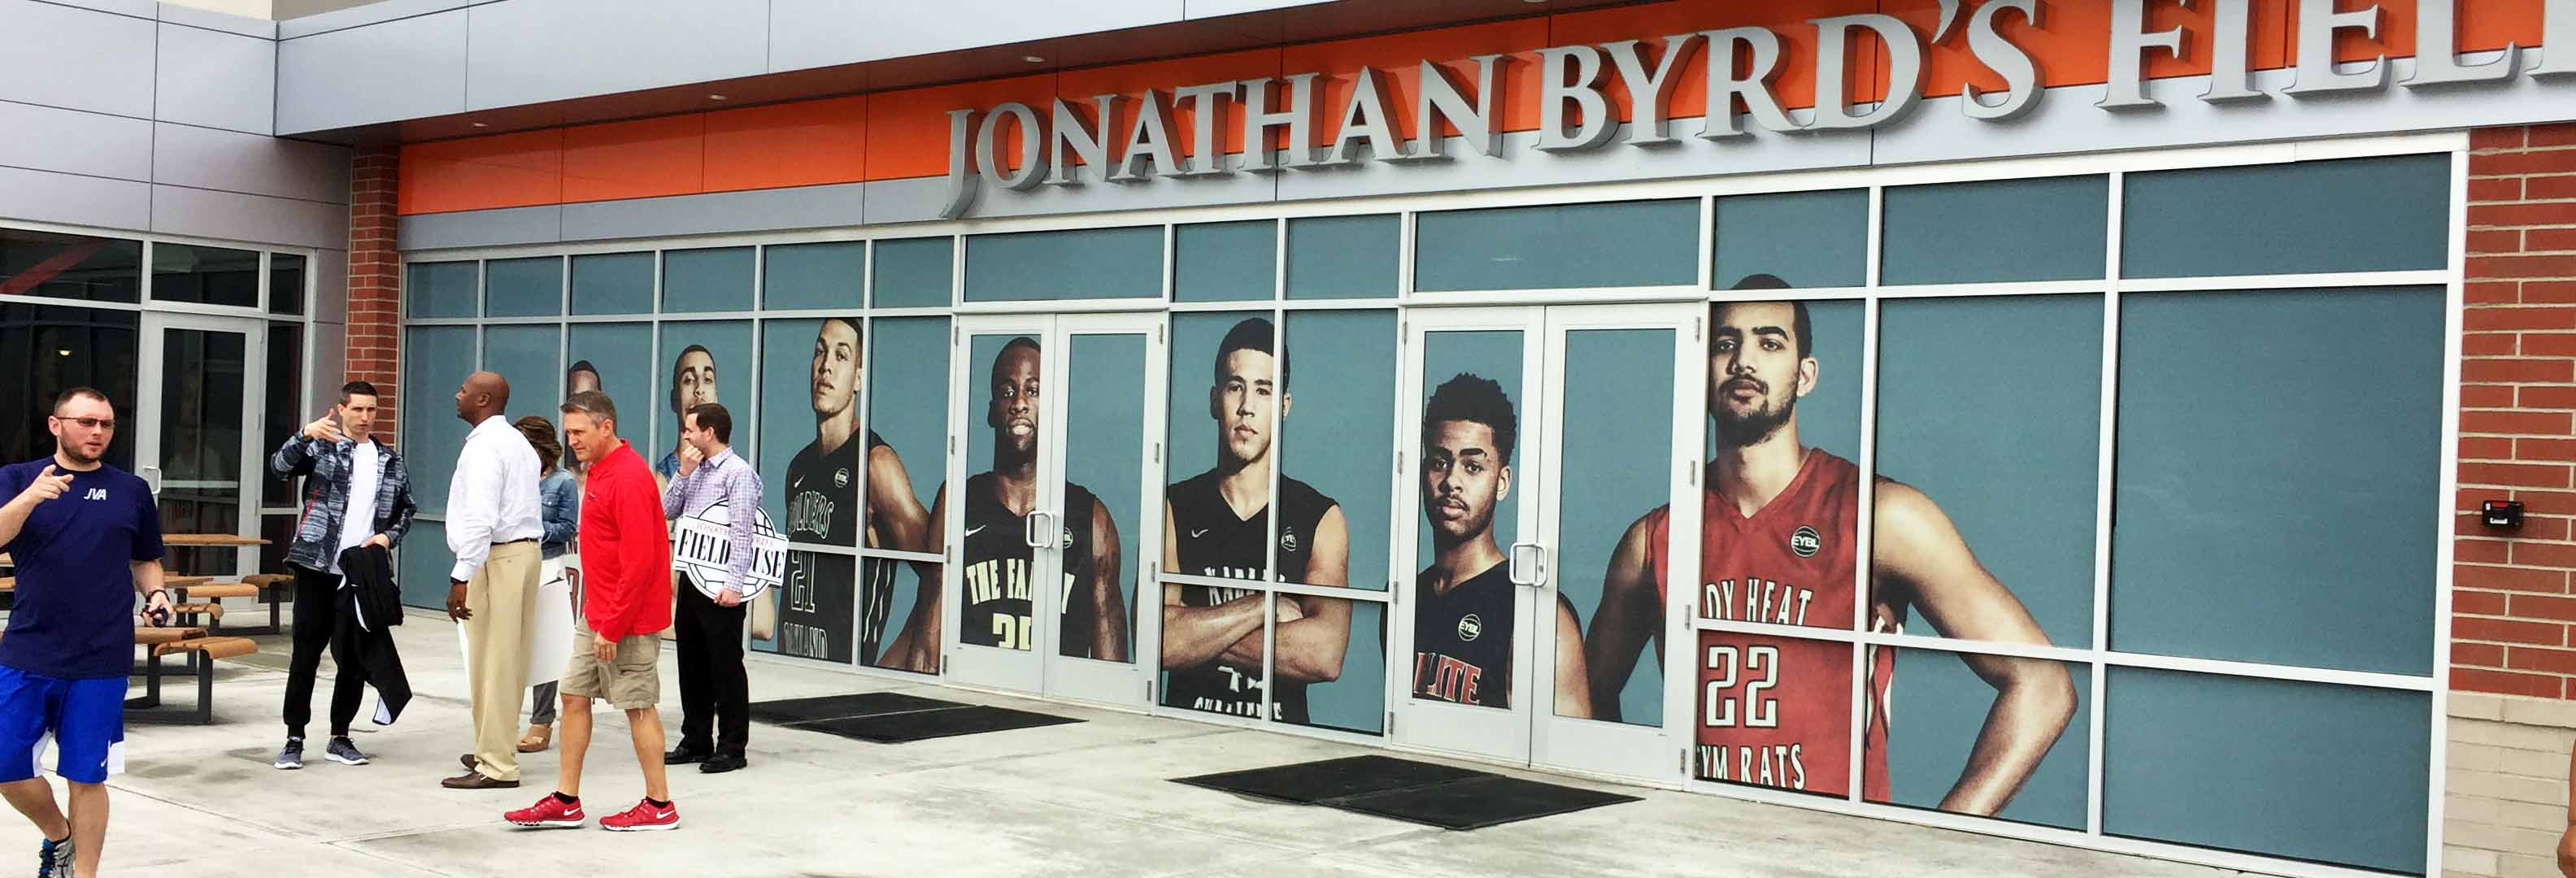 jonathan byrd's fieldhouse window view thru branding